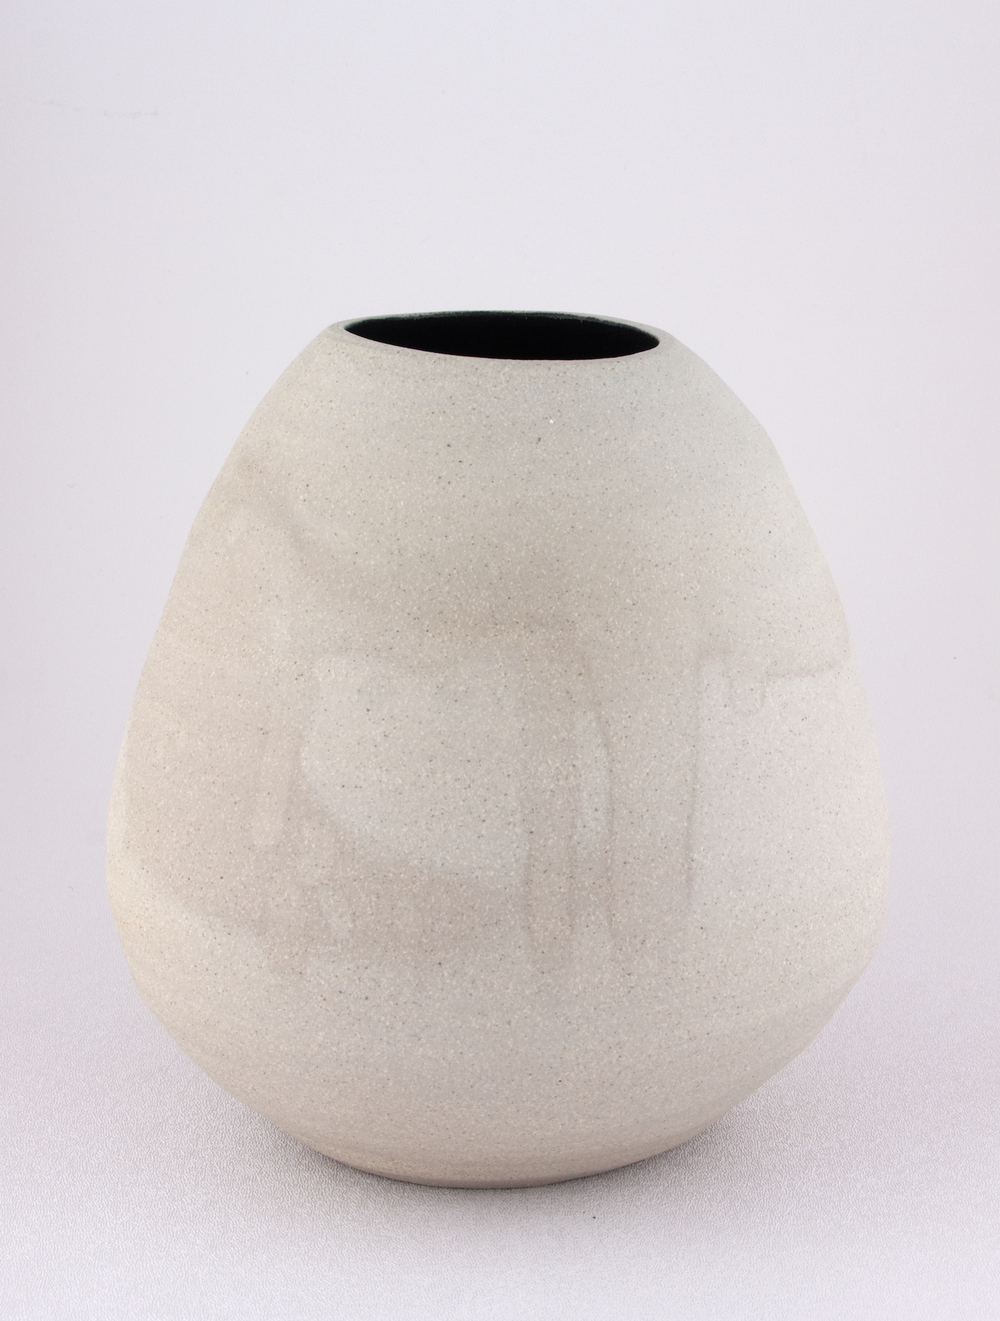 Shio Kusaka  Untitled (grey and black)  2008 Stoneware 8h x 8w x 8d in SK062